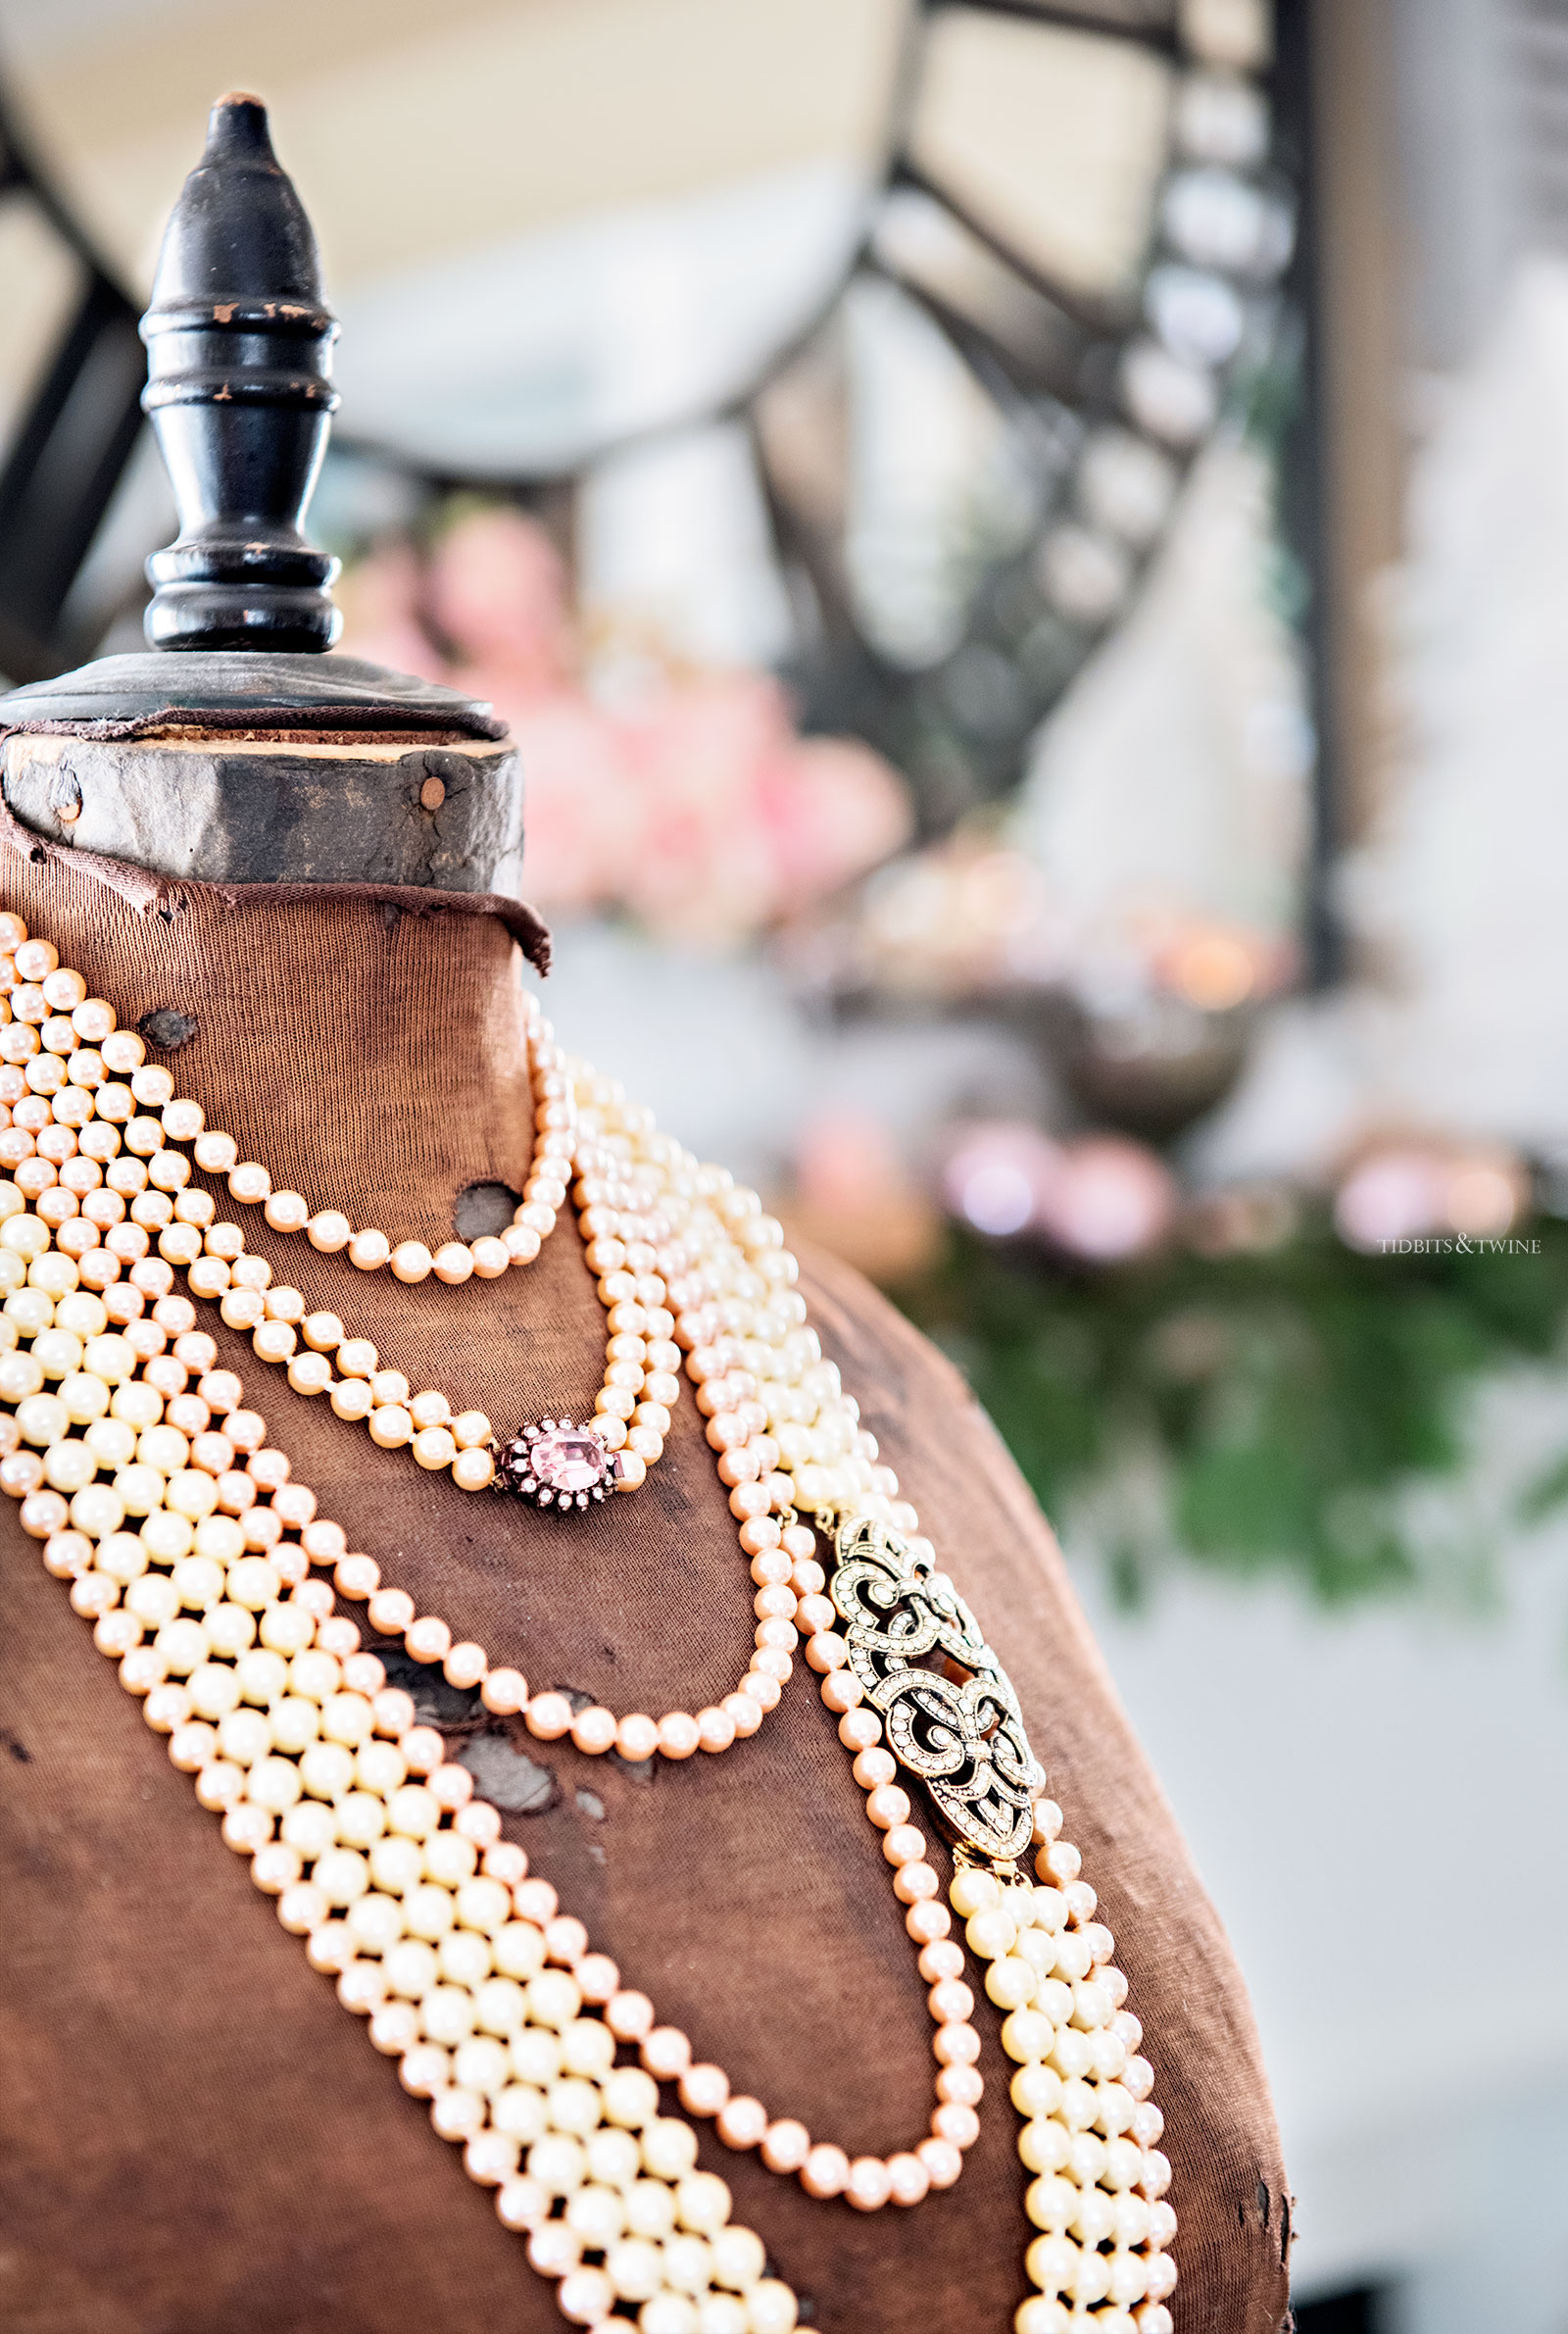 brown antique dress form with multiple strands of white pearls around neck and pink and green christmas decor in background